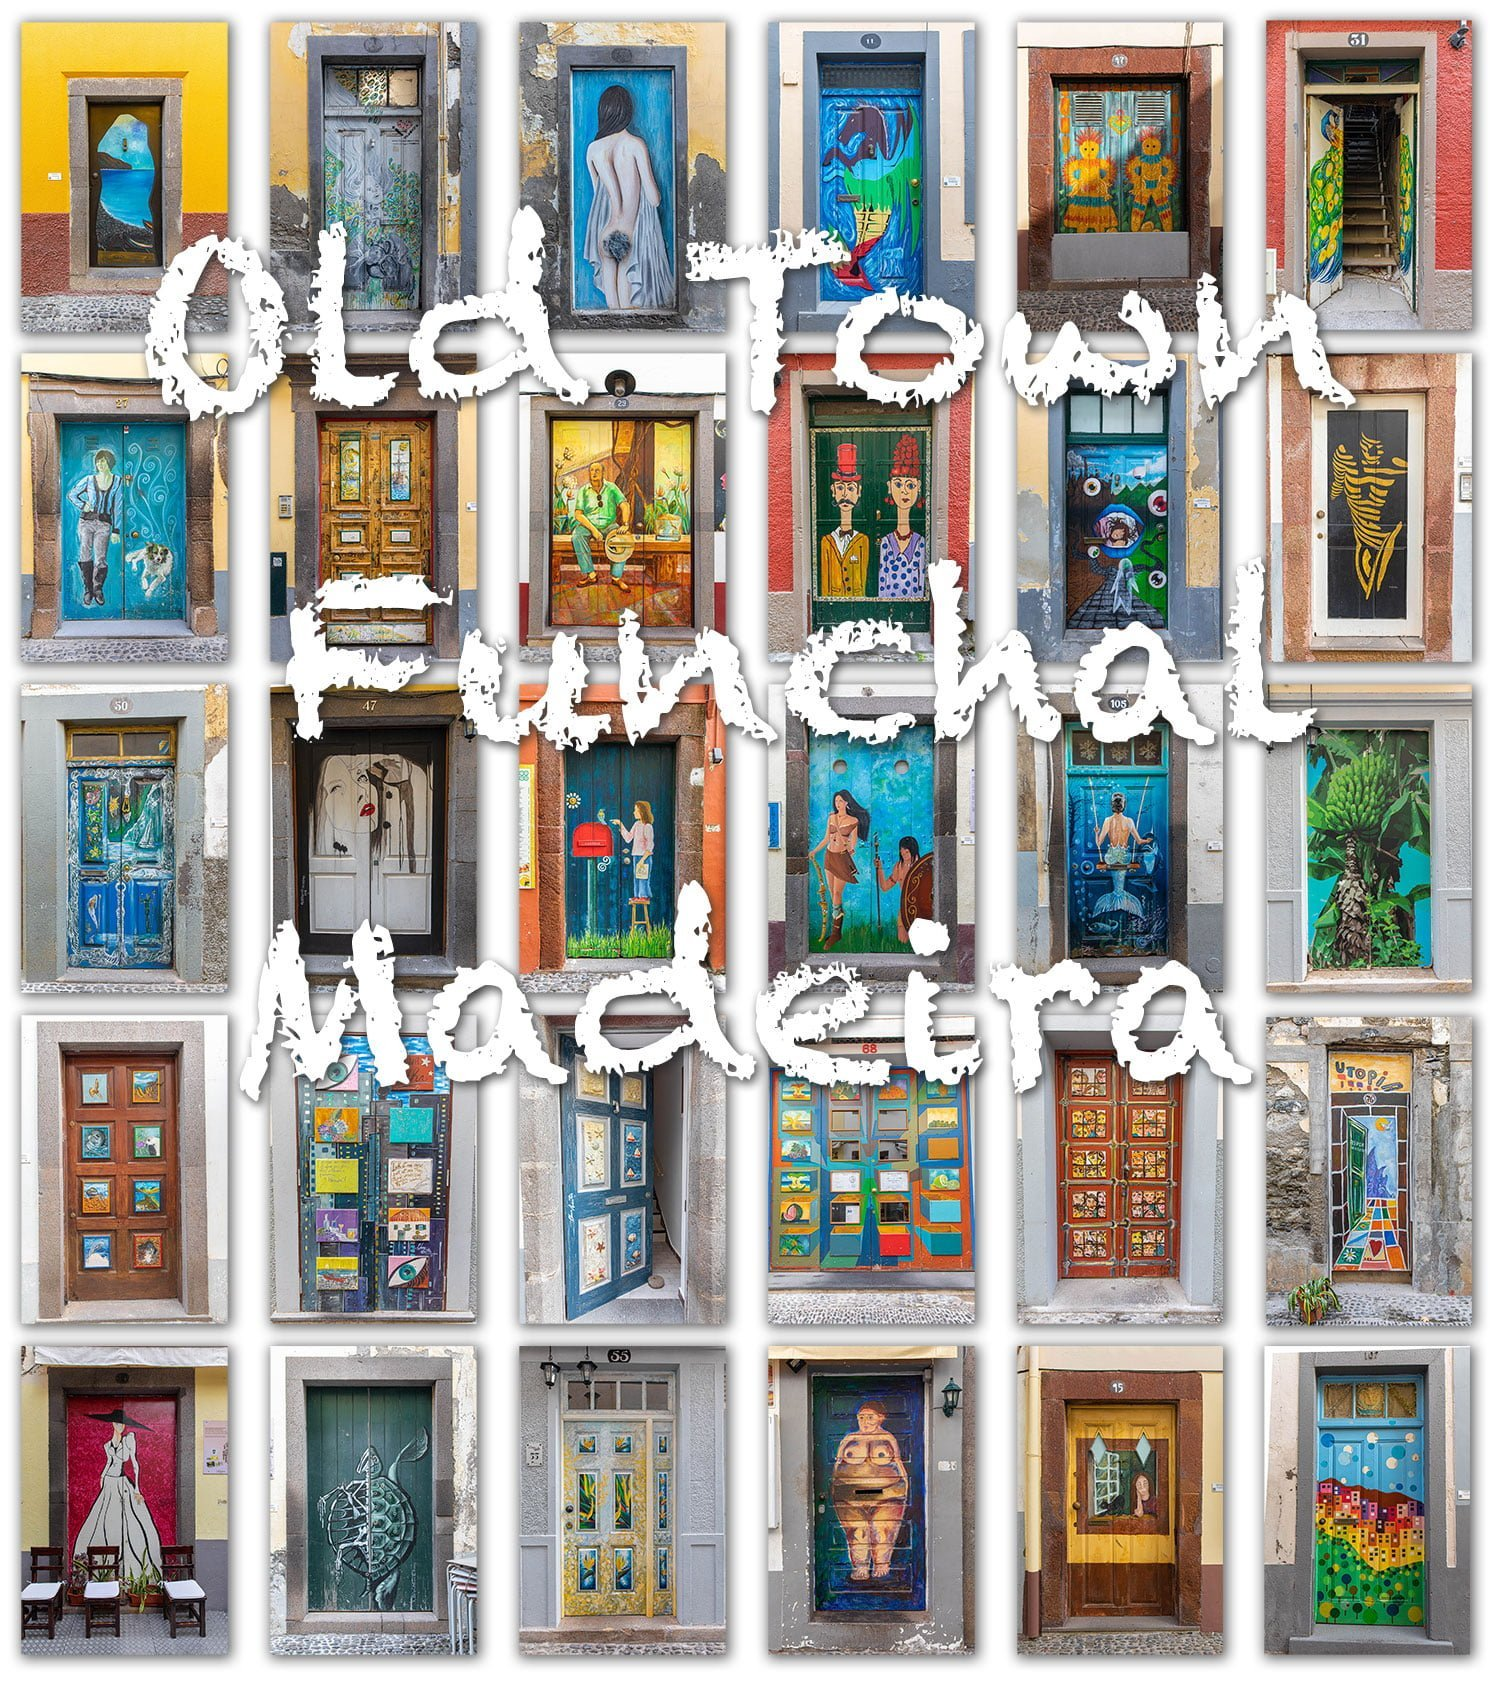 Old Town Funchal, Madeira has many doors with streetart